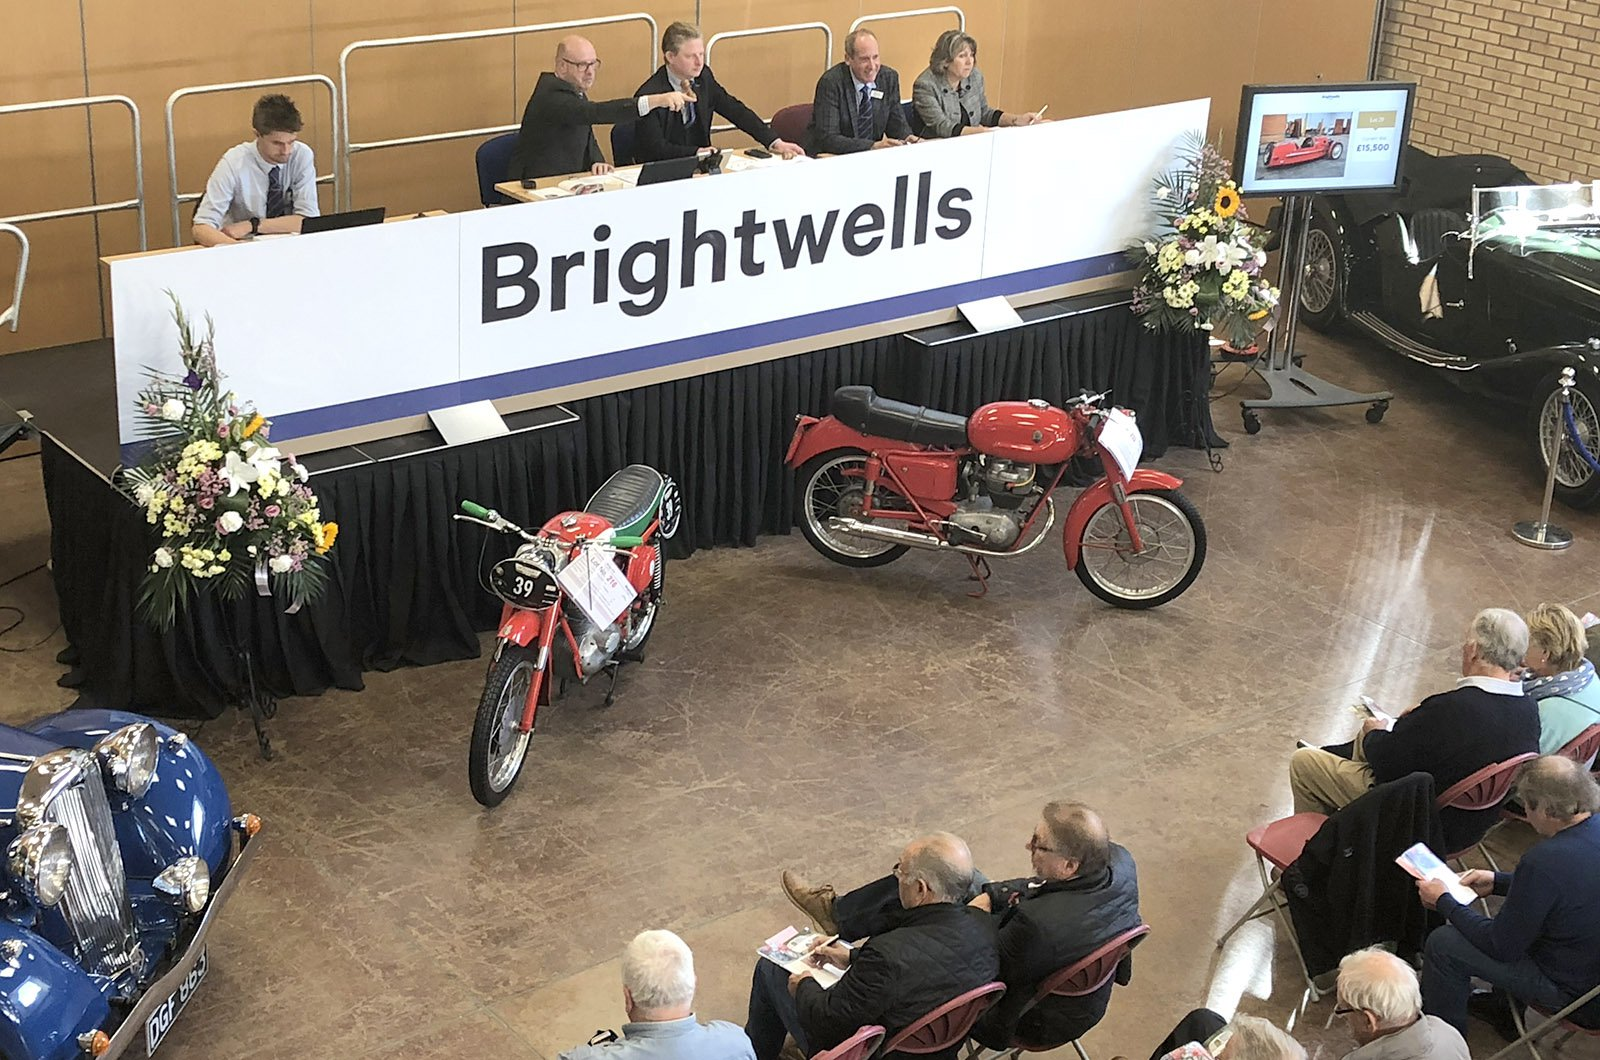 Brightwells car auction table where bidding is happening